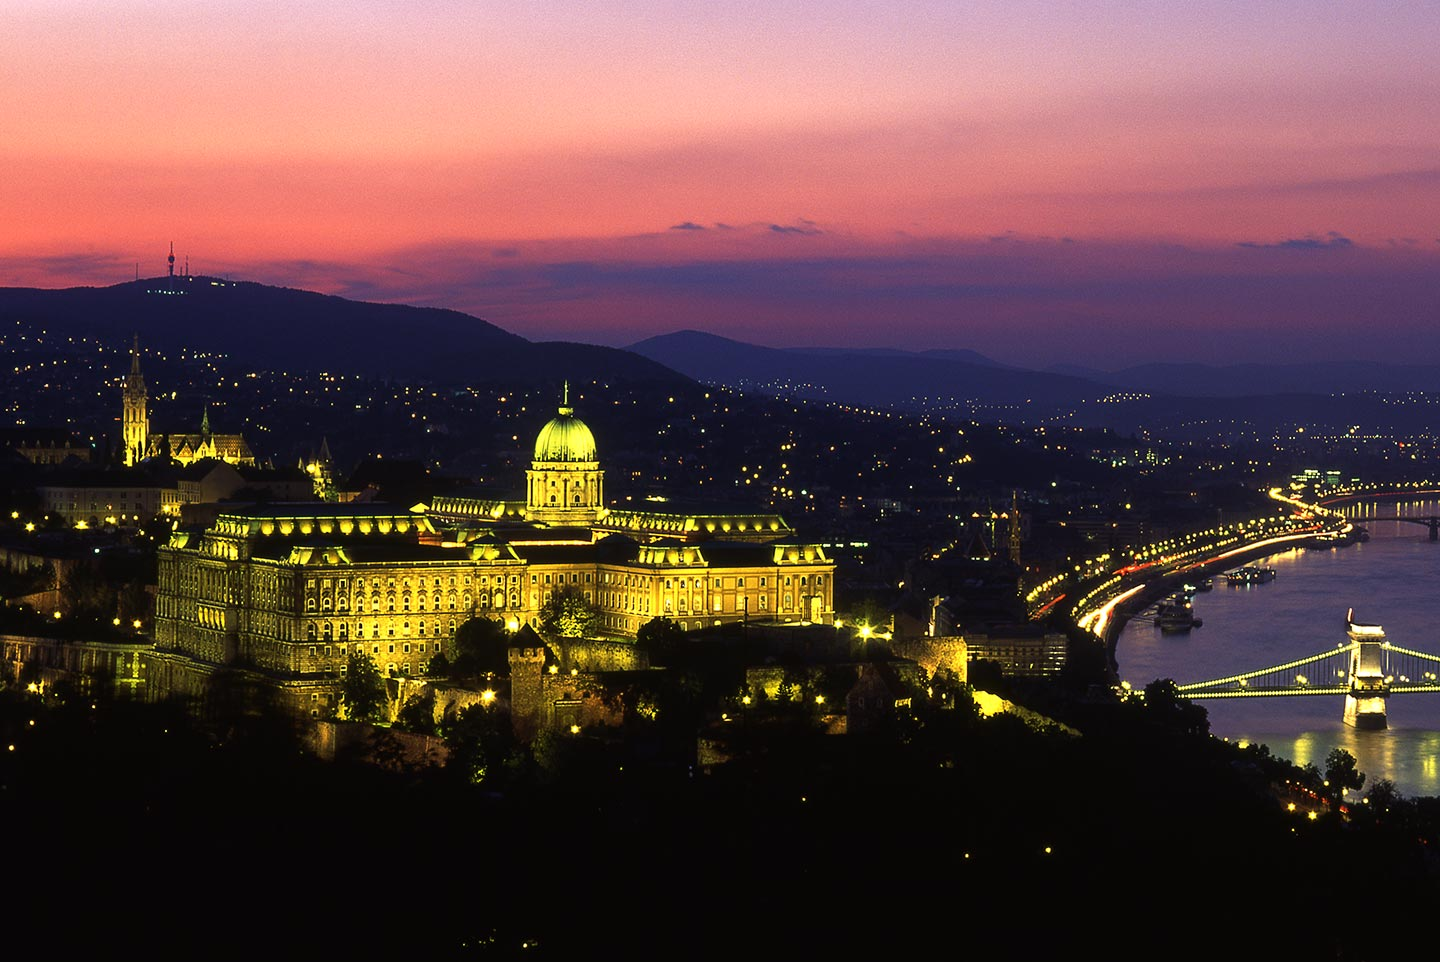 Image of Buda Castle, Budapest at night